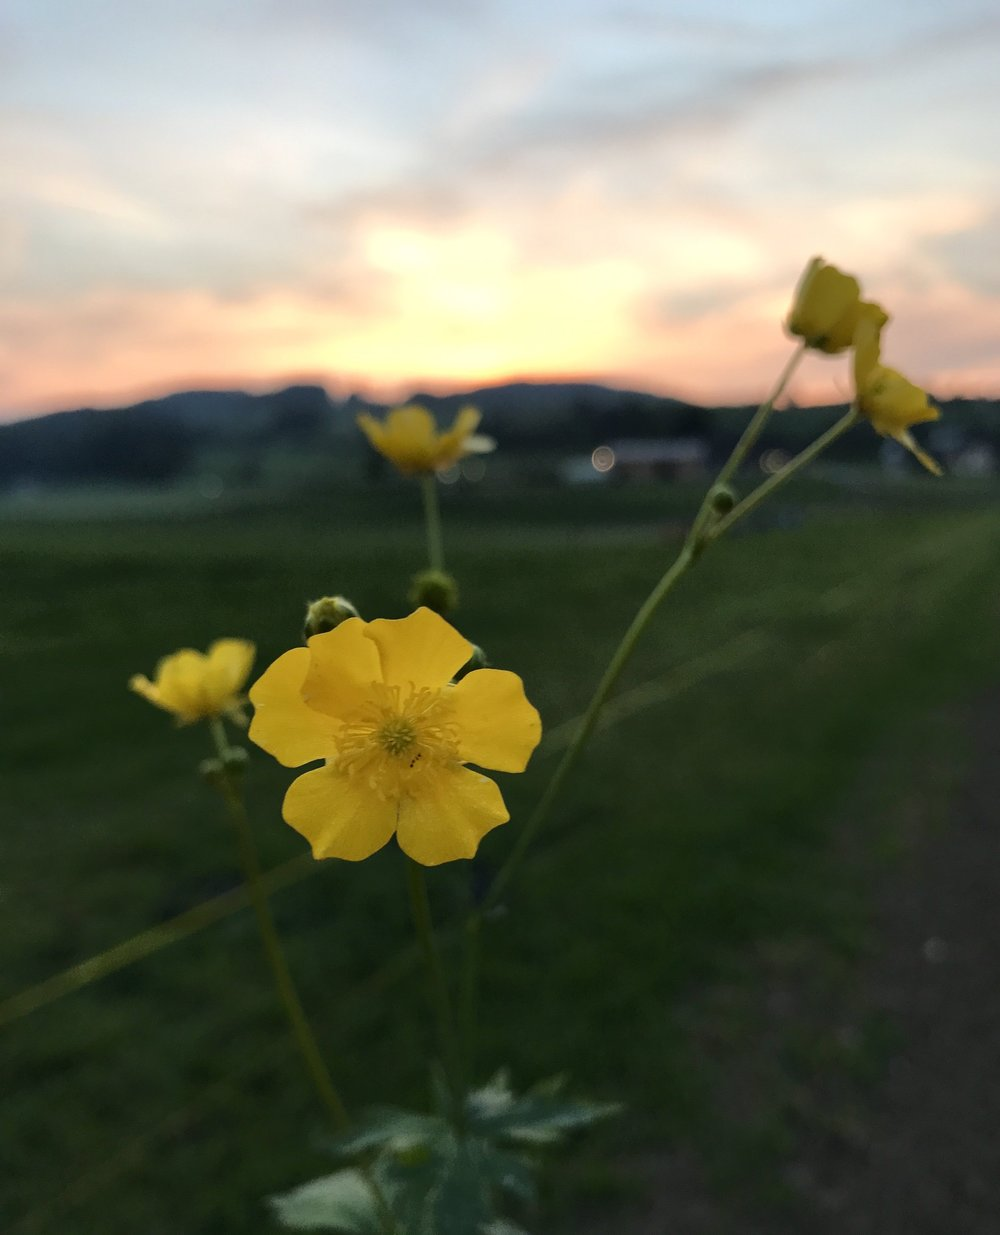 The end of the day, Wuppenau, Switzerland.